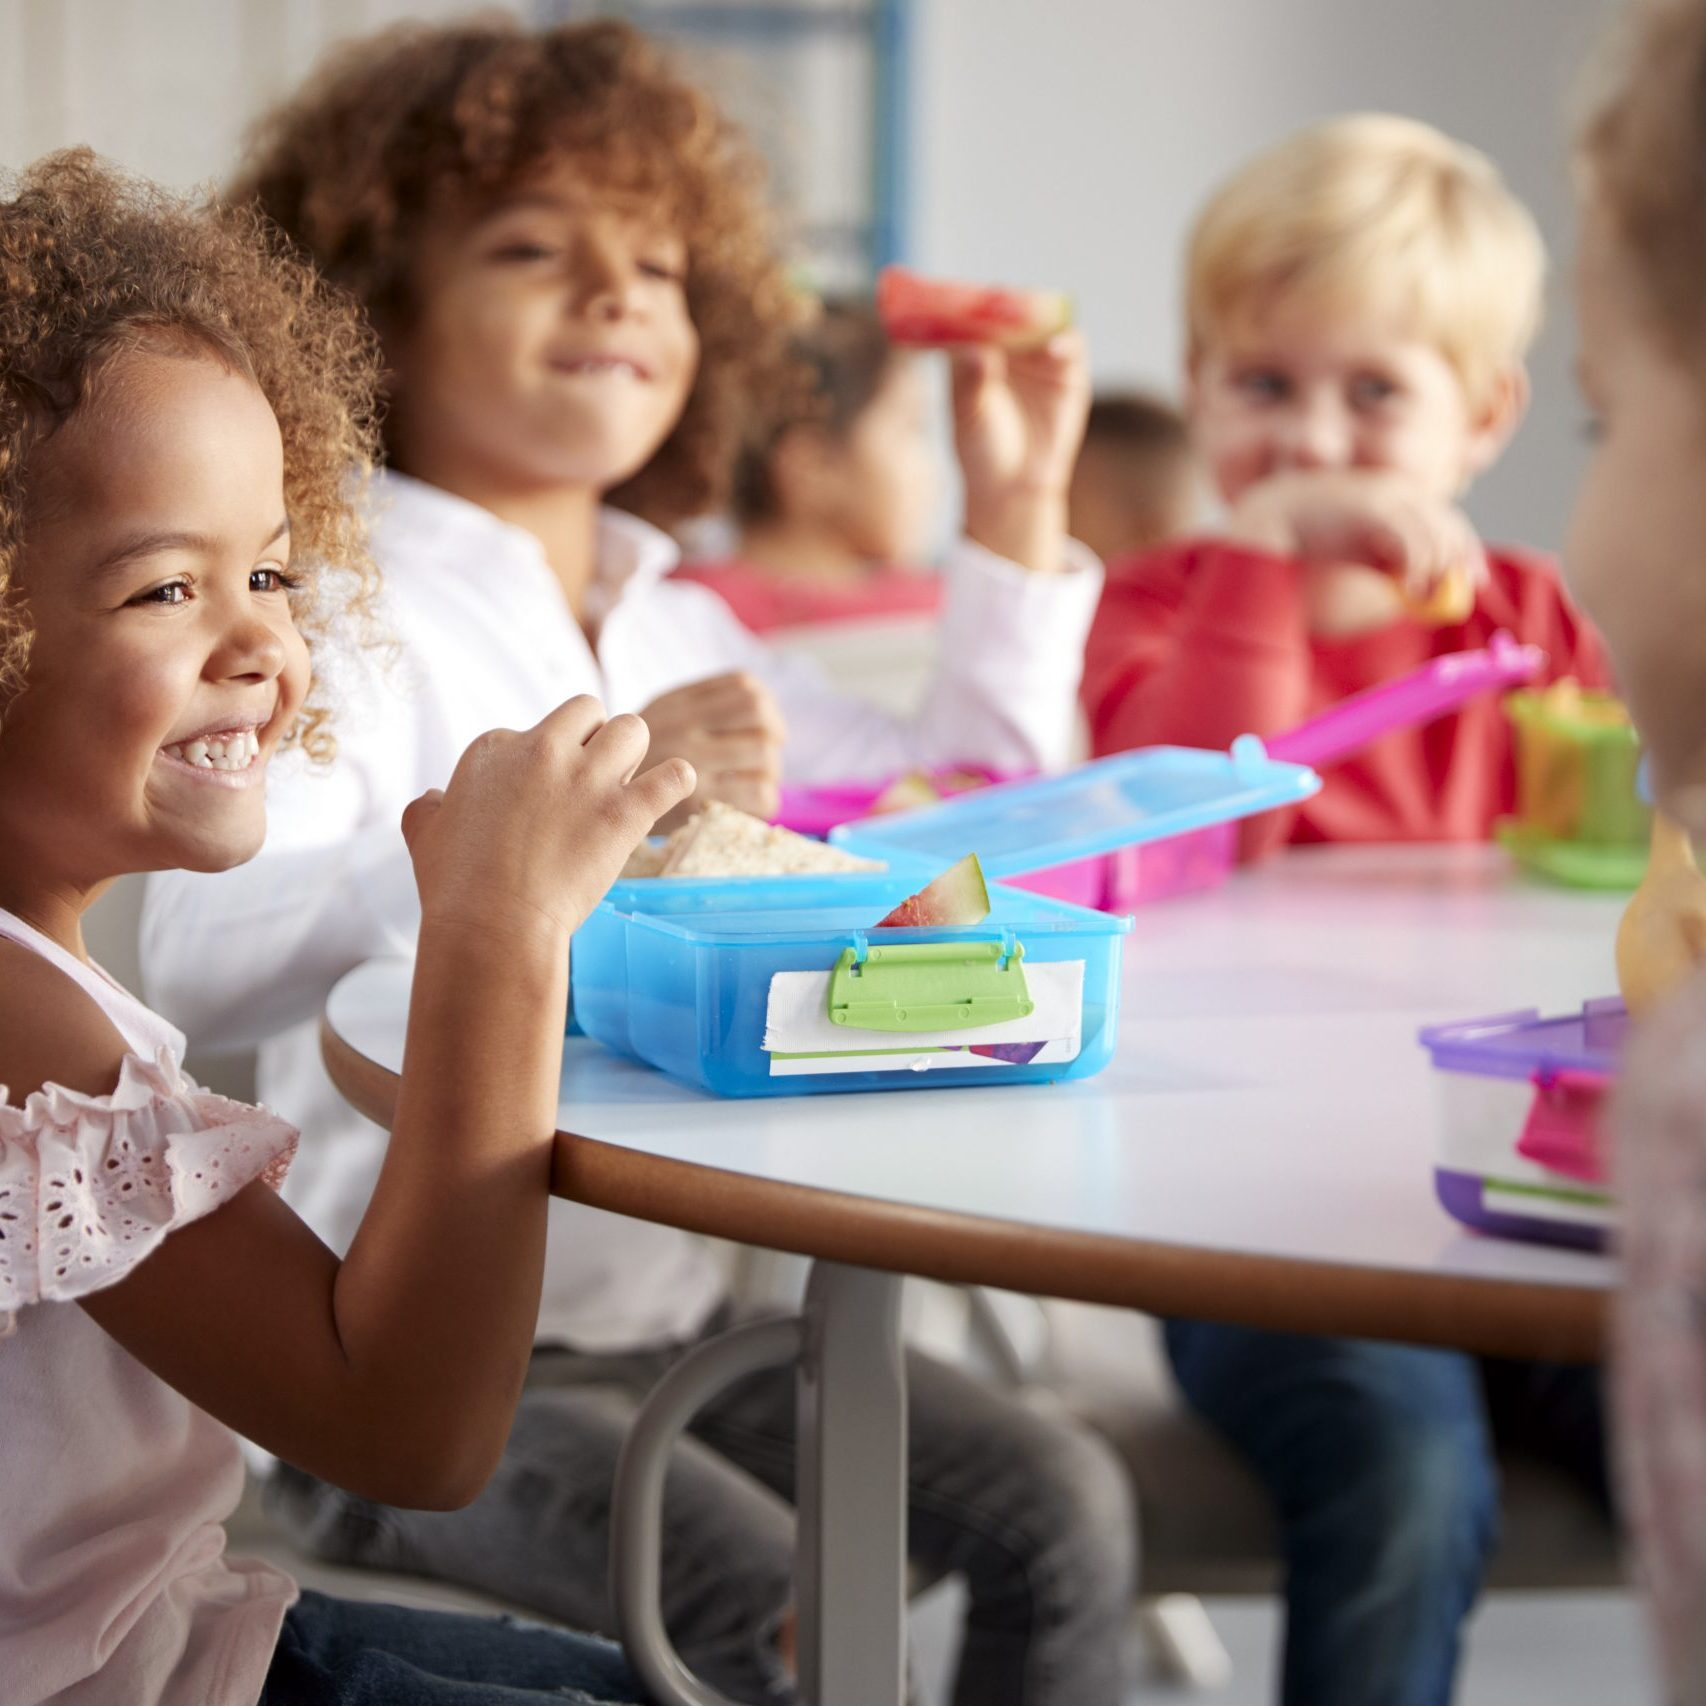 Close up of smiling young children sitting at a table eating their packed lunches together at infant school, selective focus